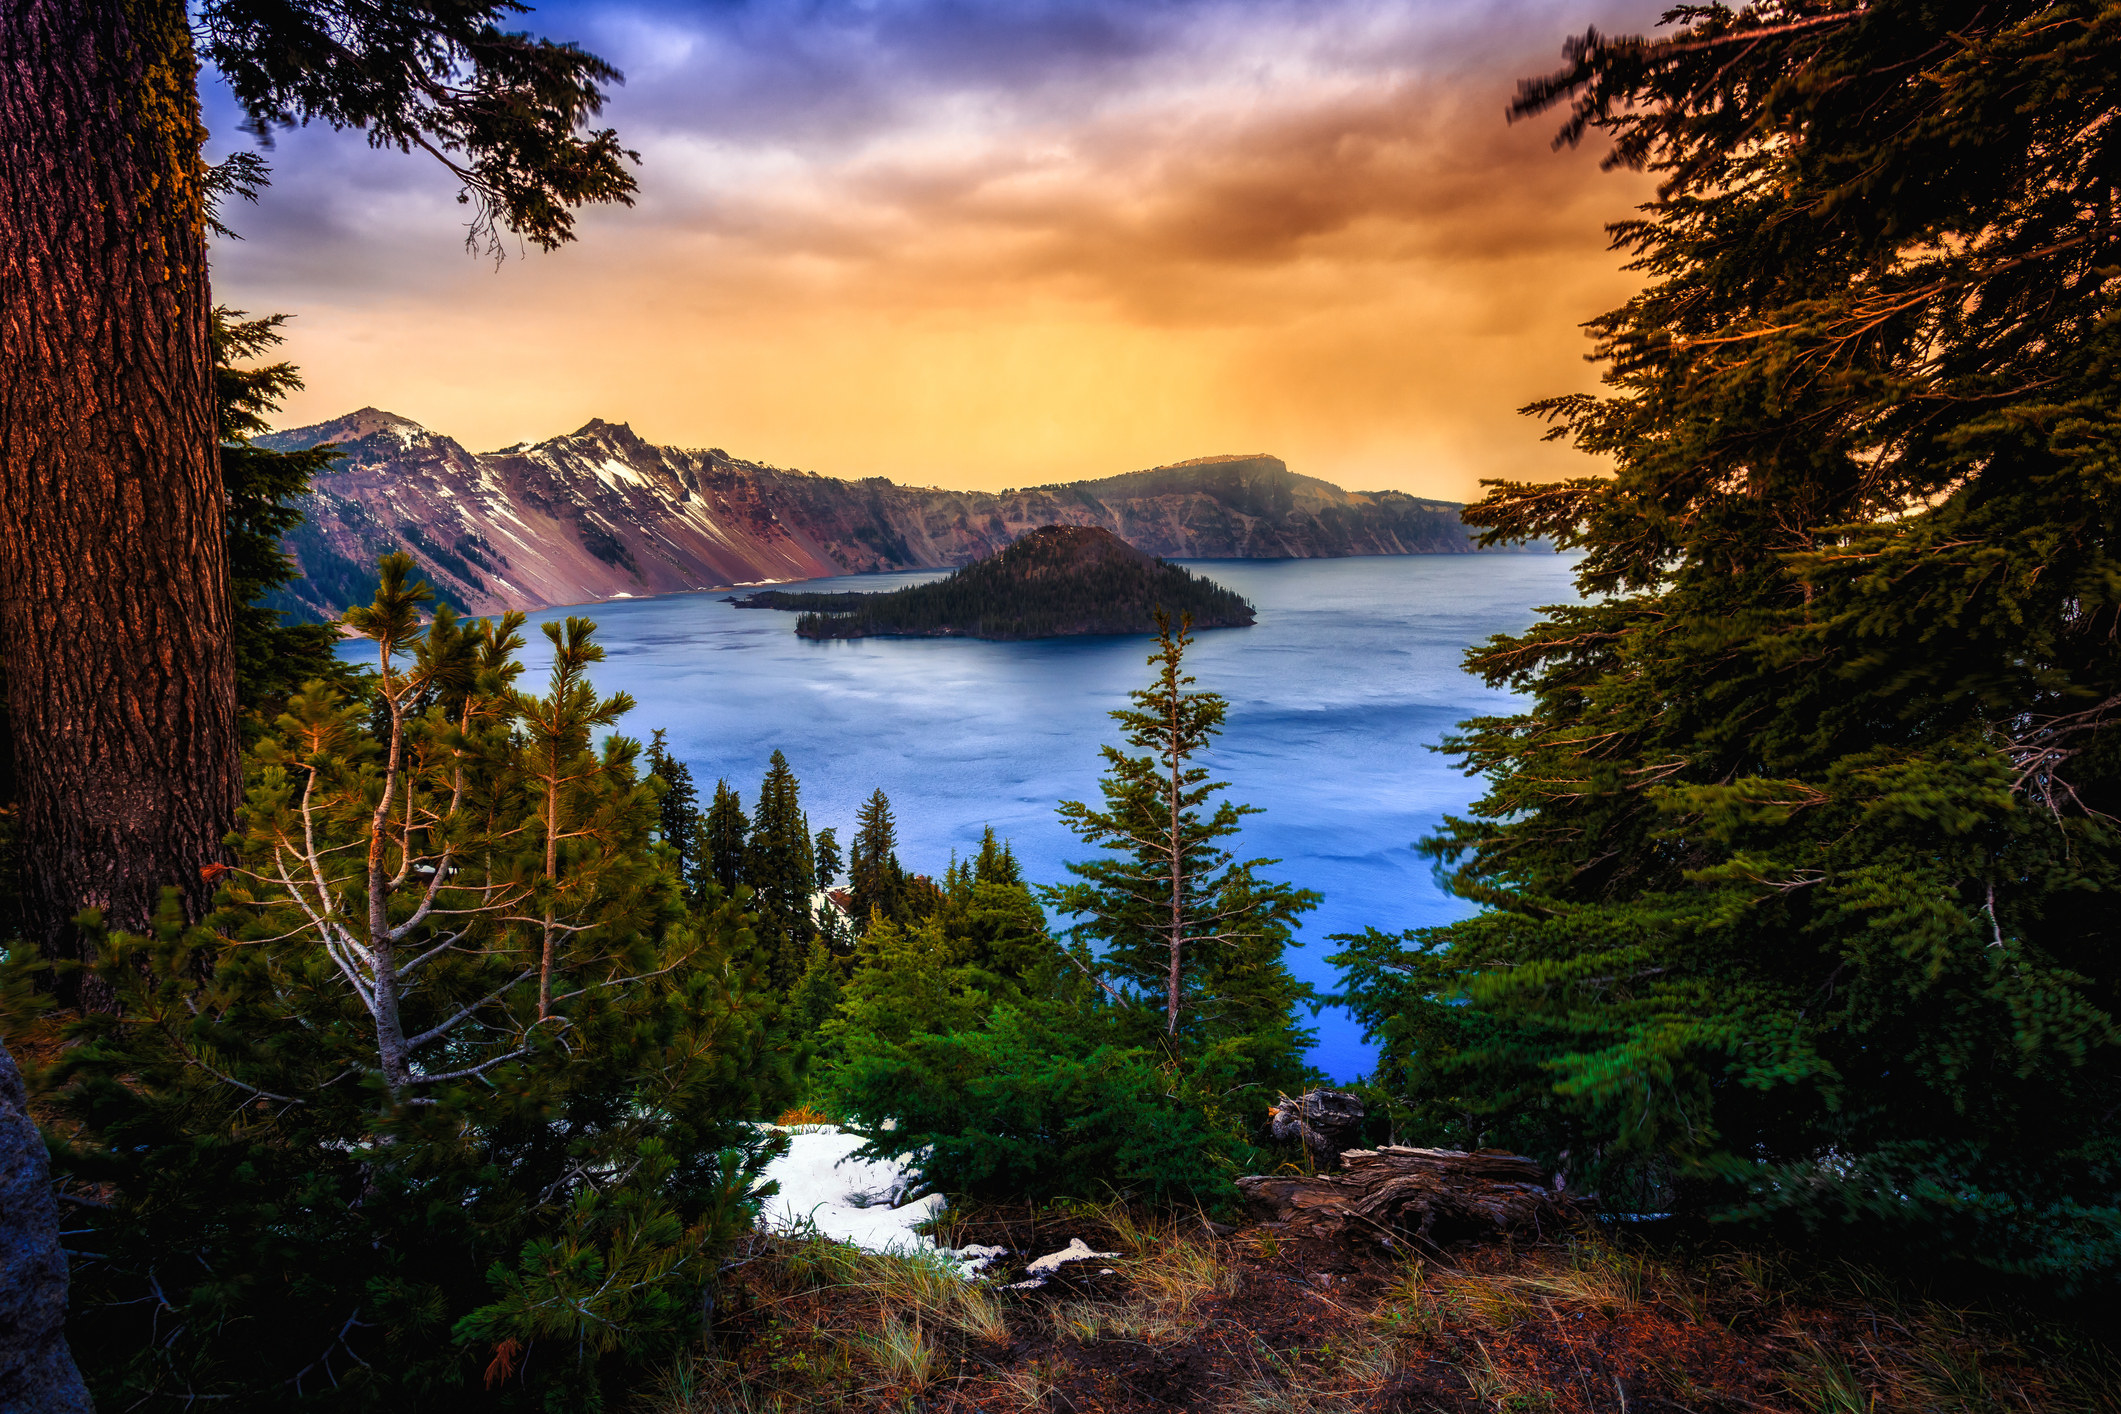 A colorful sunset over Crater Lake in Crater Lake National Park.